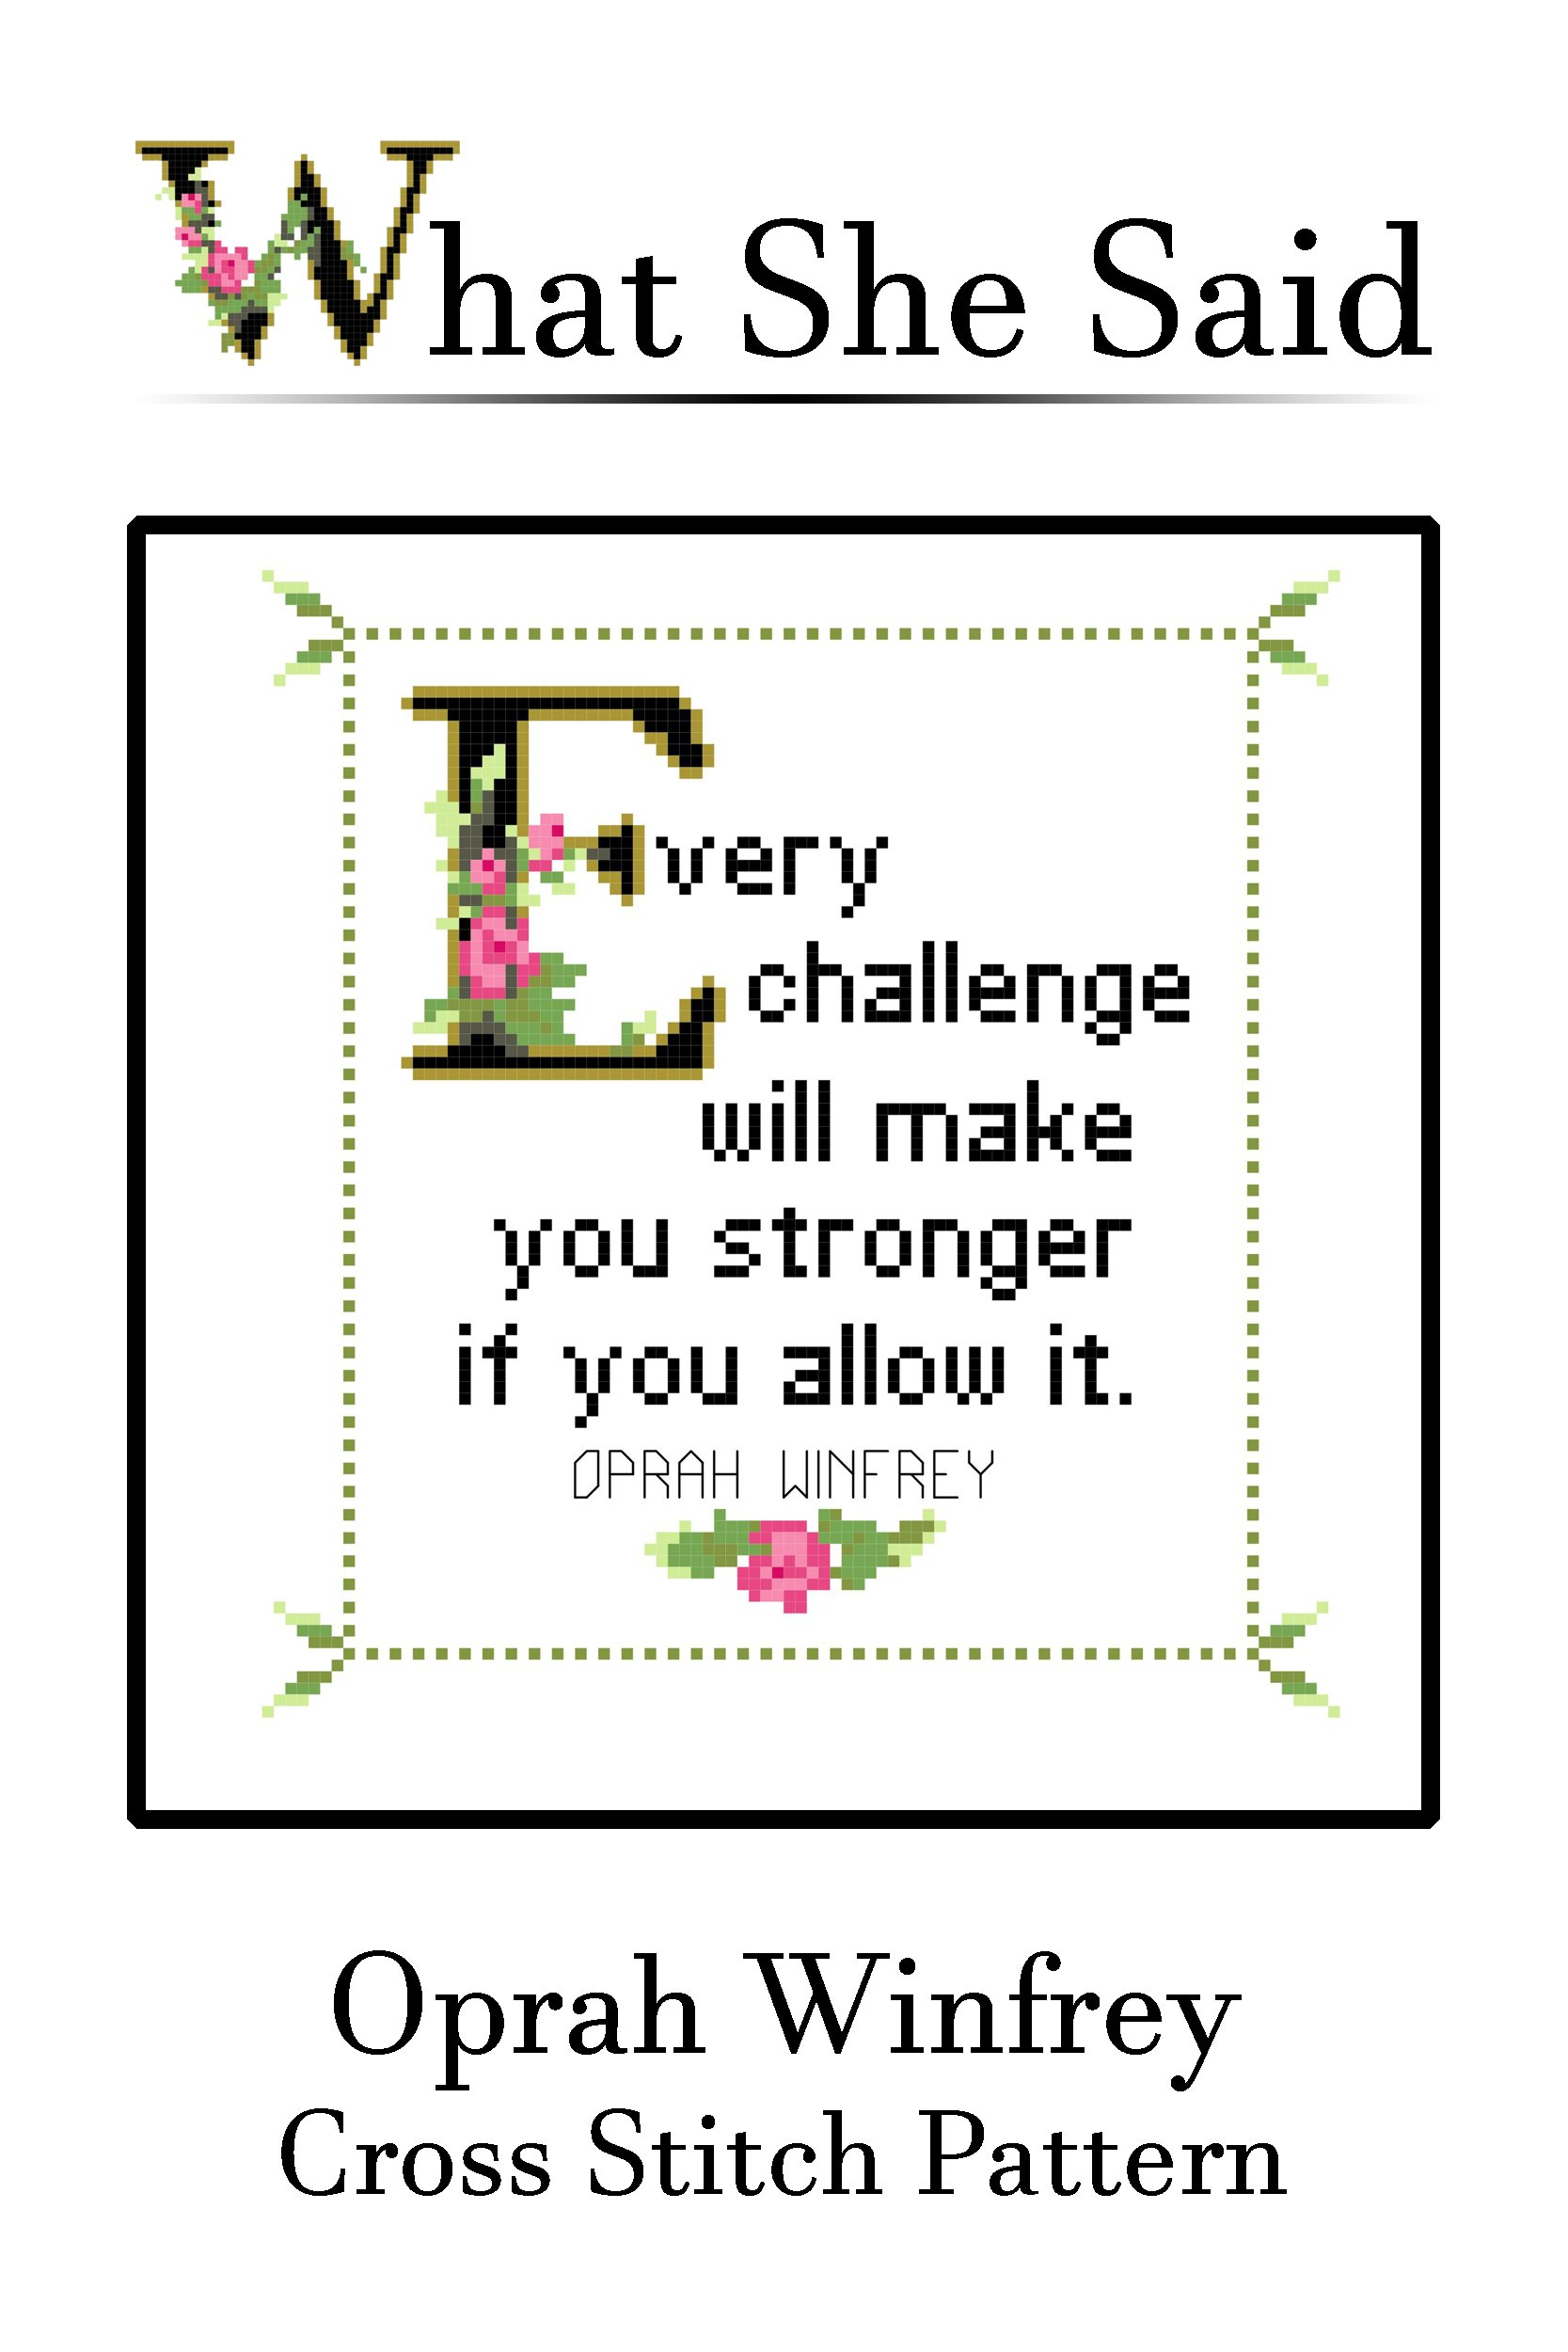 Oprah Winfrey Quote Cross Stitch Pattern: Every challenge will make you stronger if you allow it.